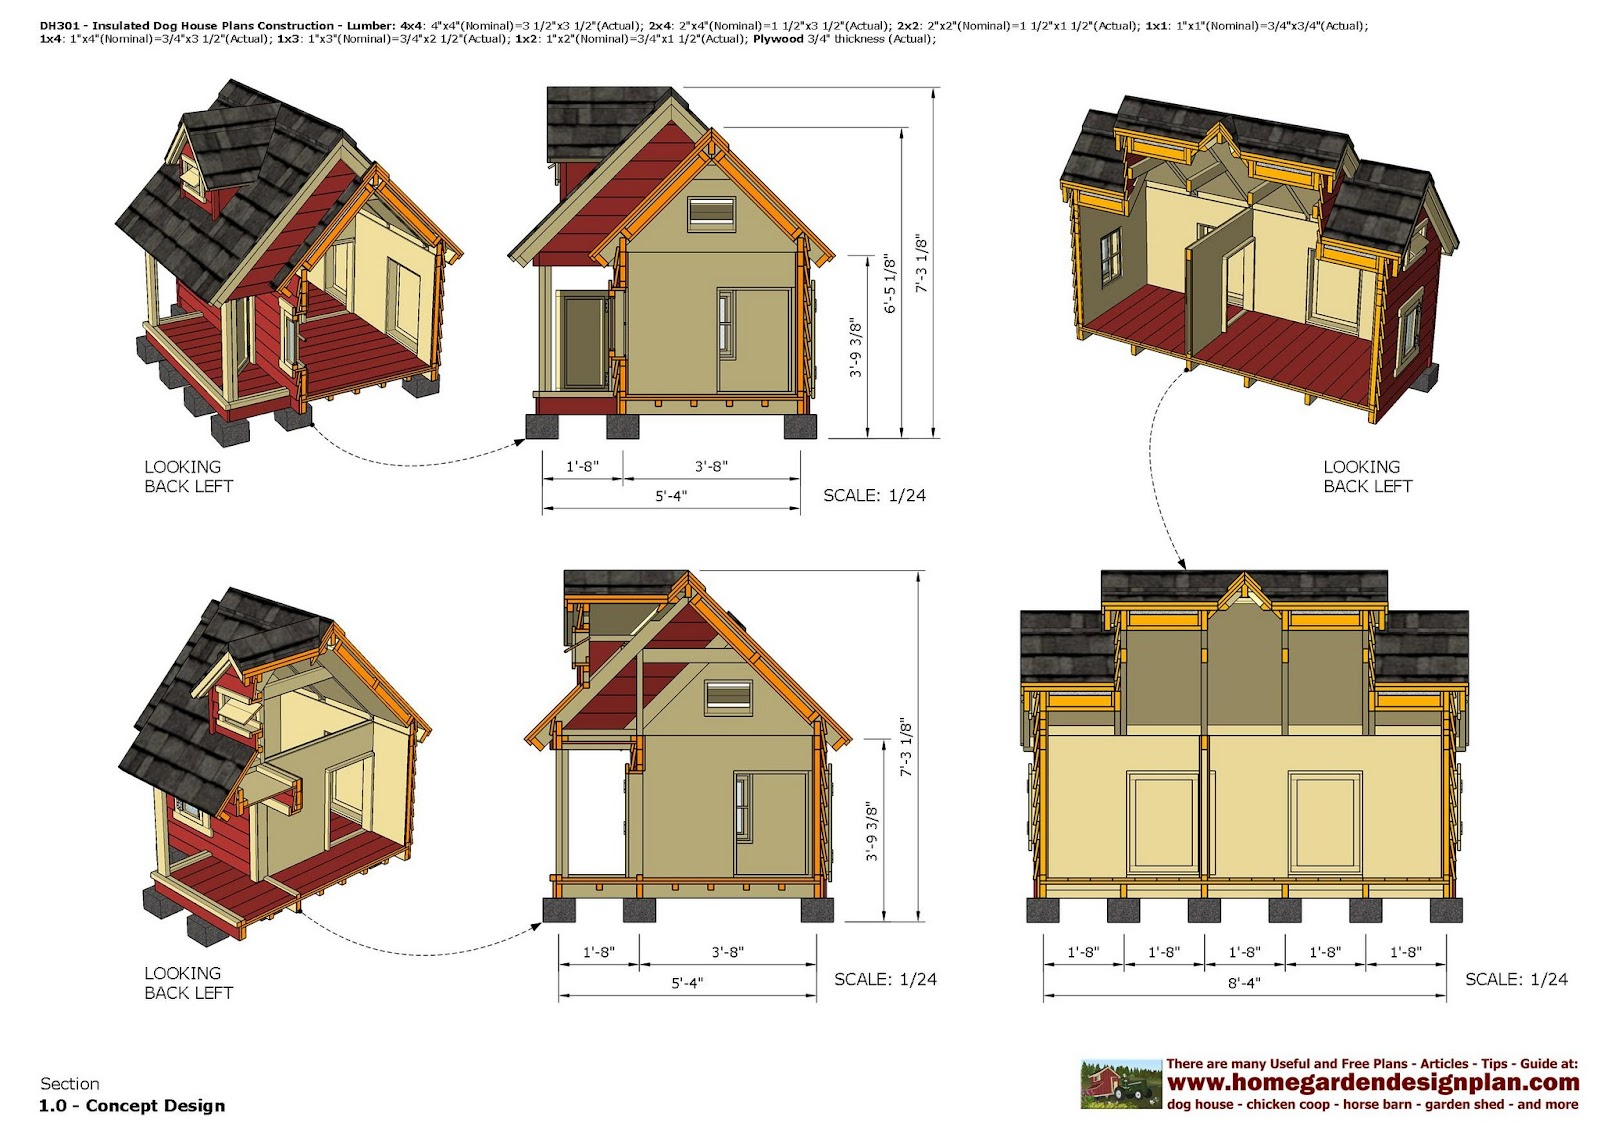 home garden plans: dh301 - insulated dog house plans - dog house